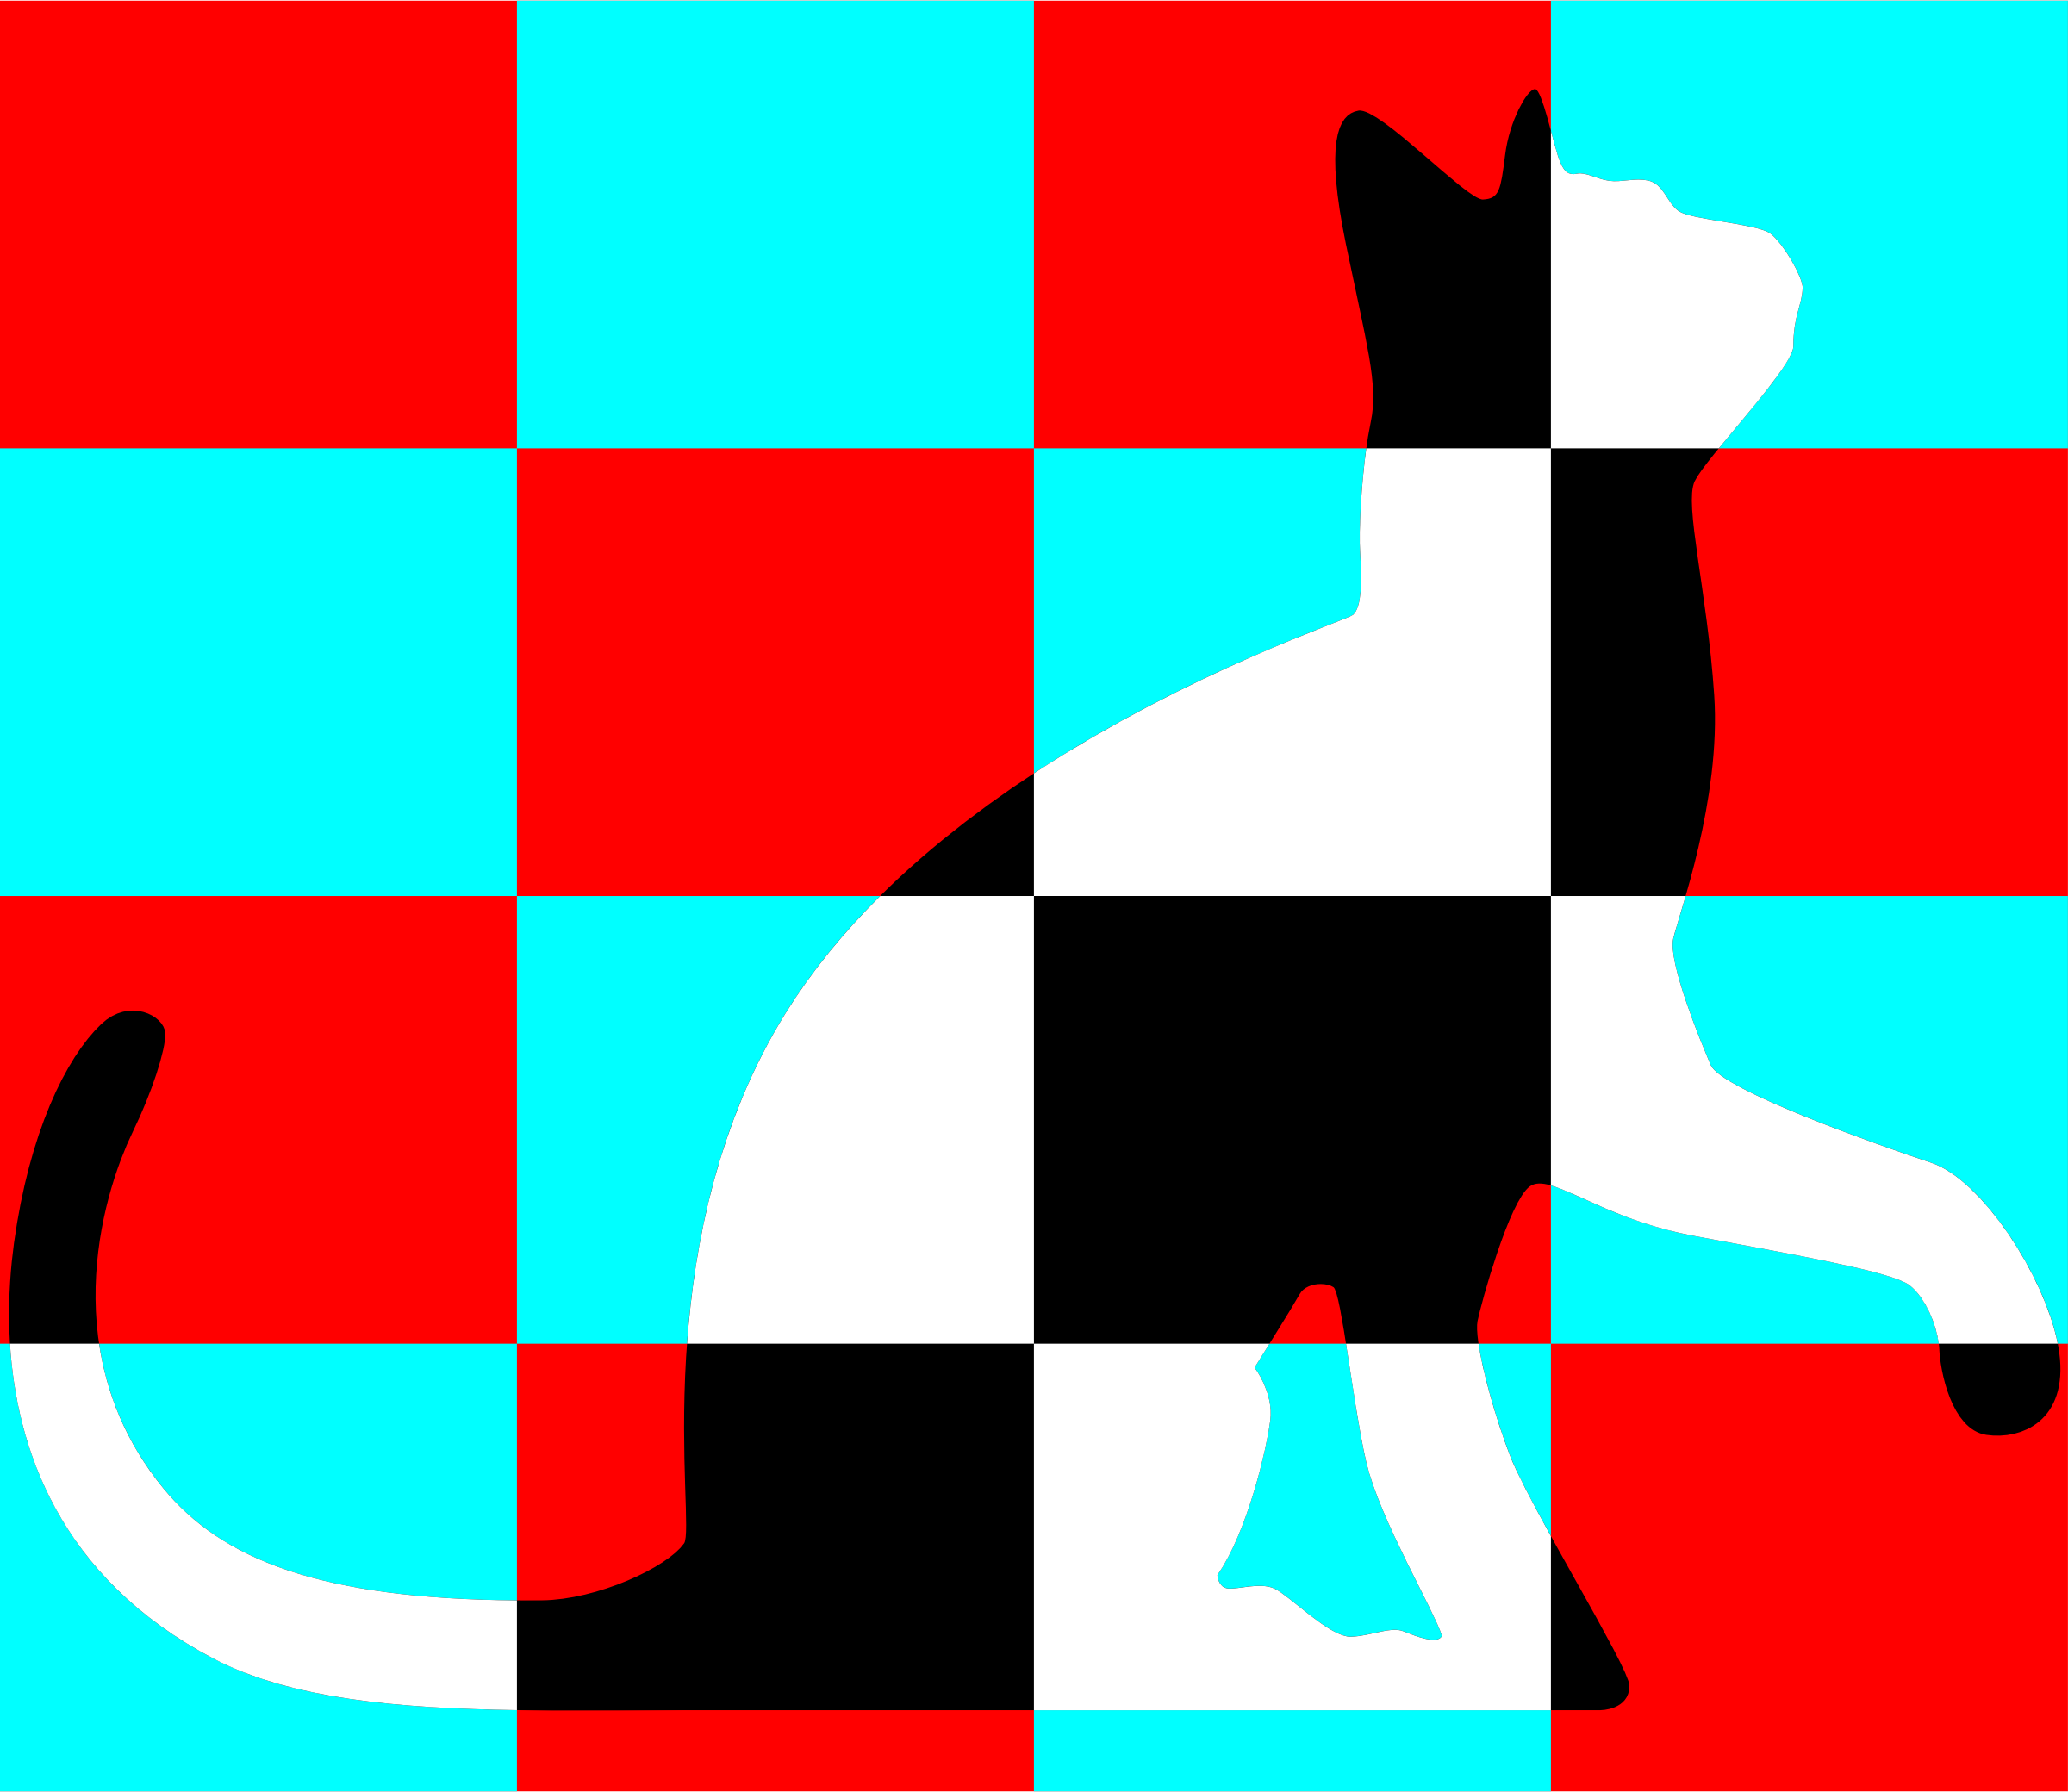 Chequered cat by Firkin